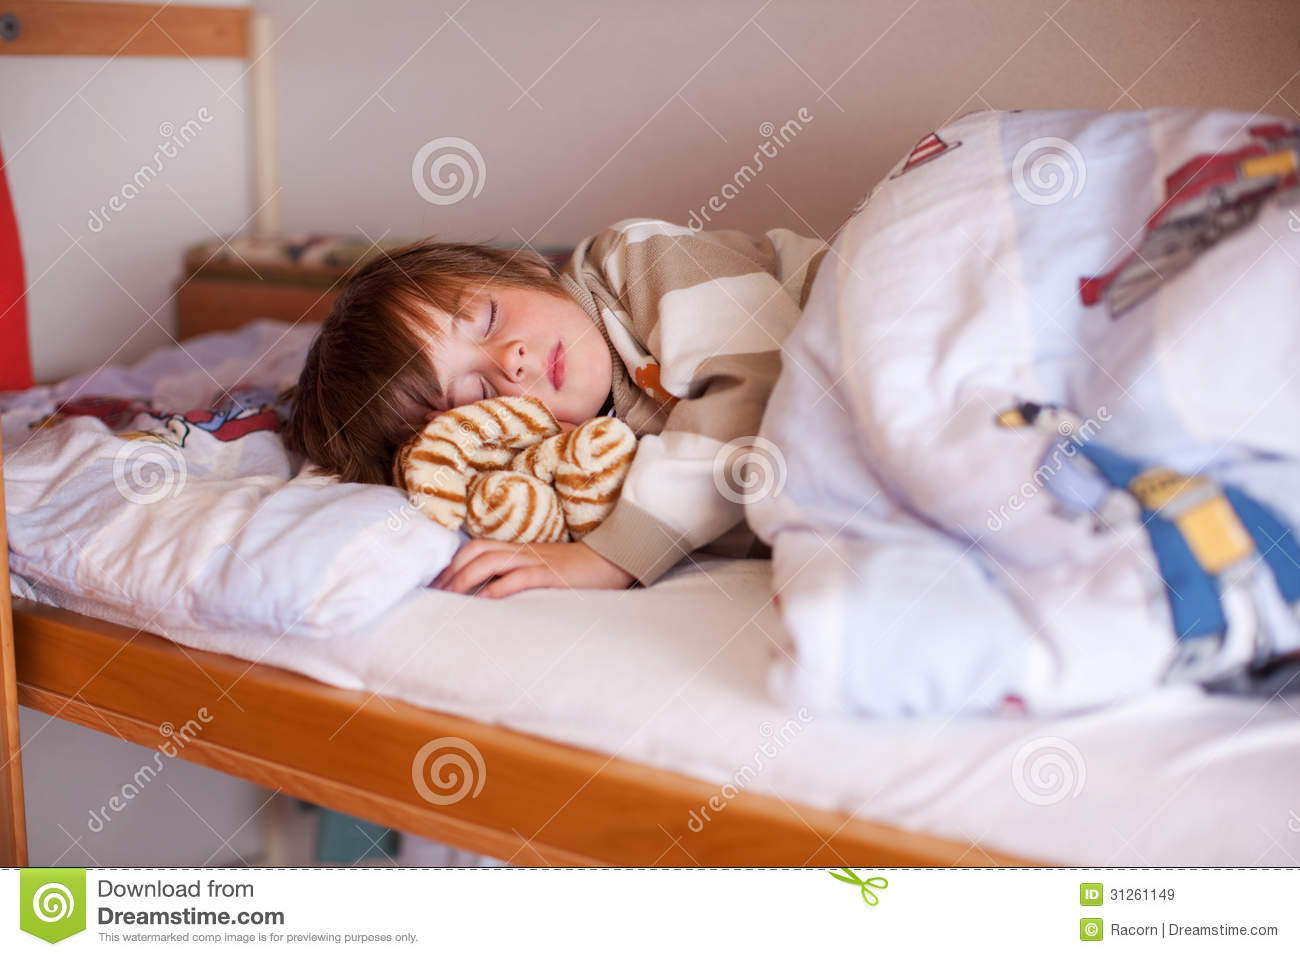 Boy Sleeping On Bunk Bed Royalty Free Stock Images - Image: 31261149